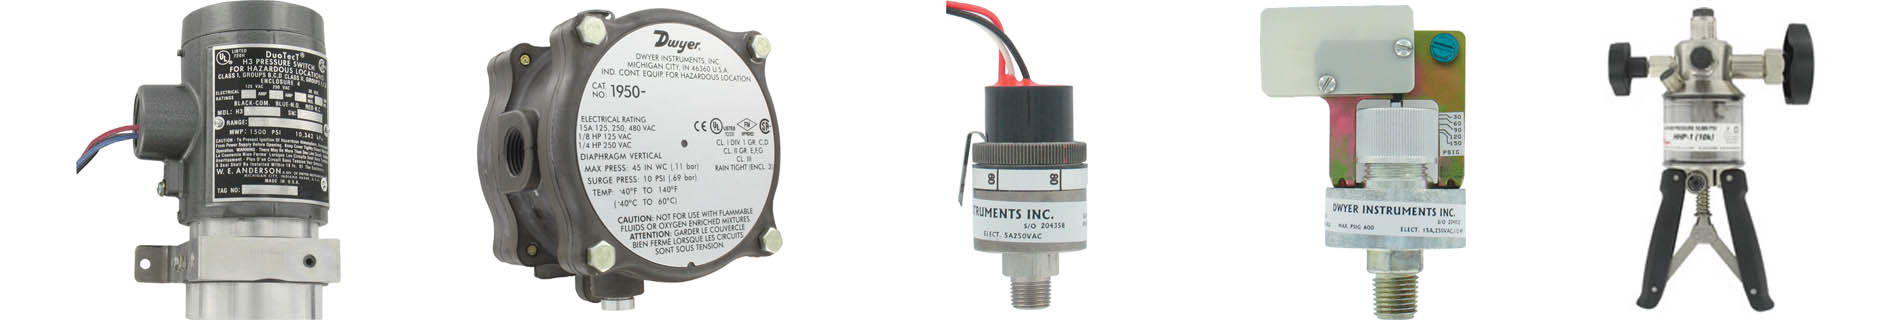 Pressure Switch Manufacturers banner